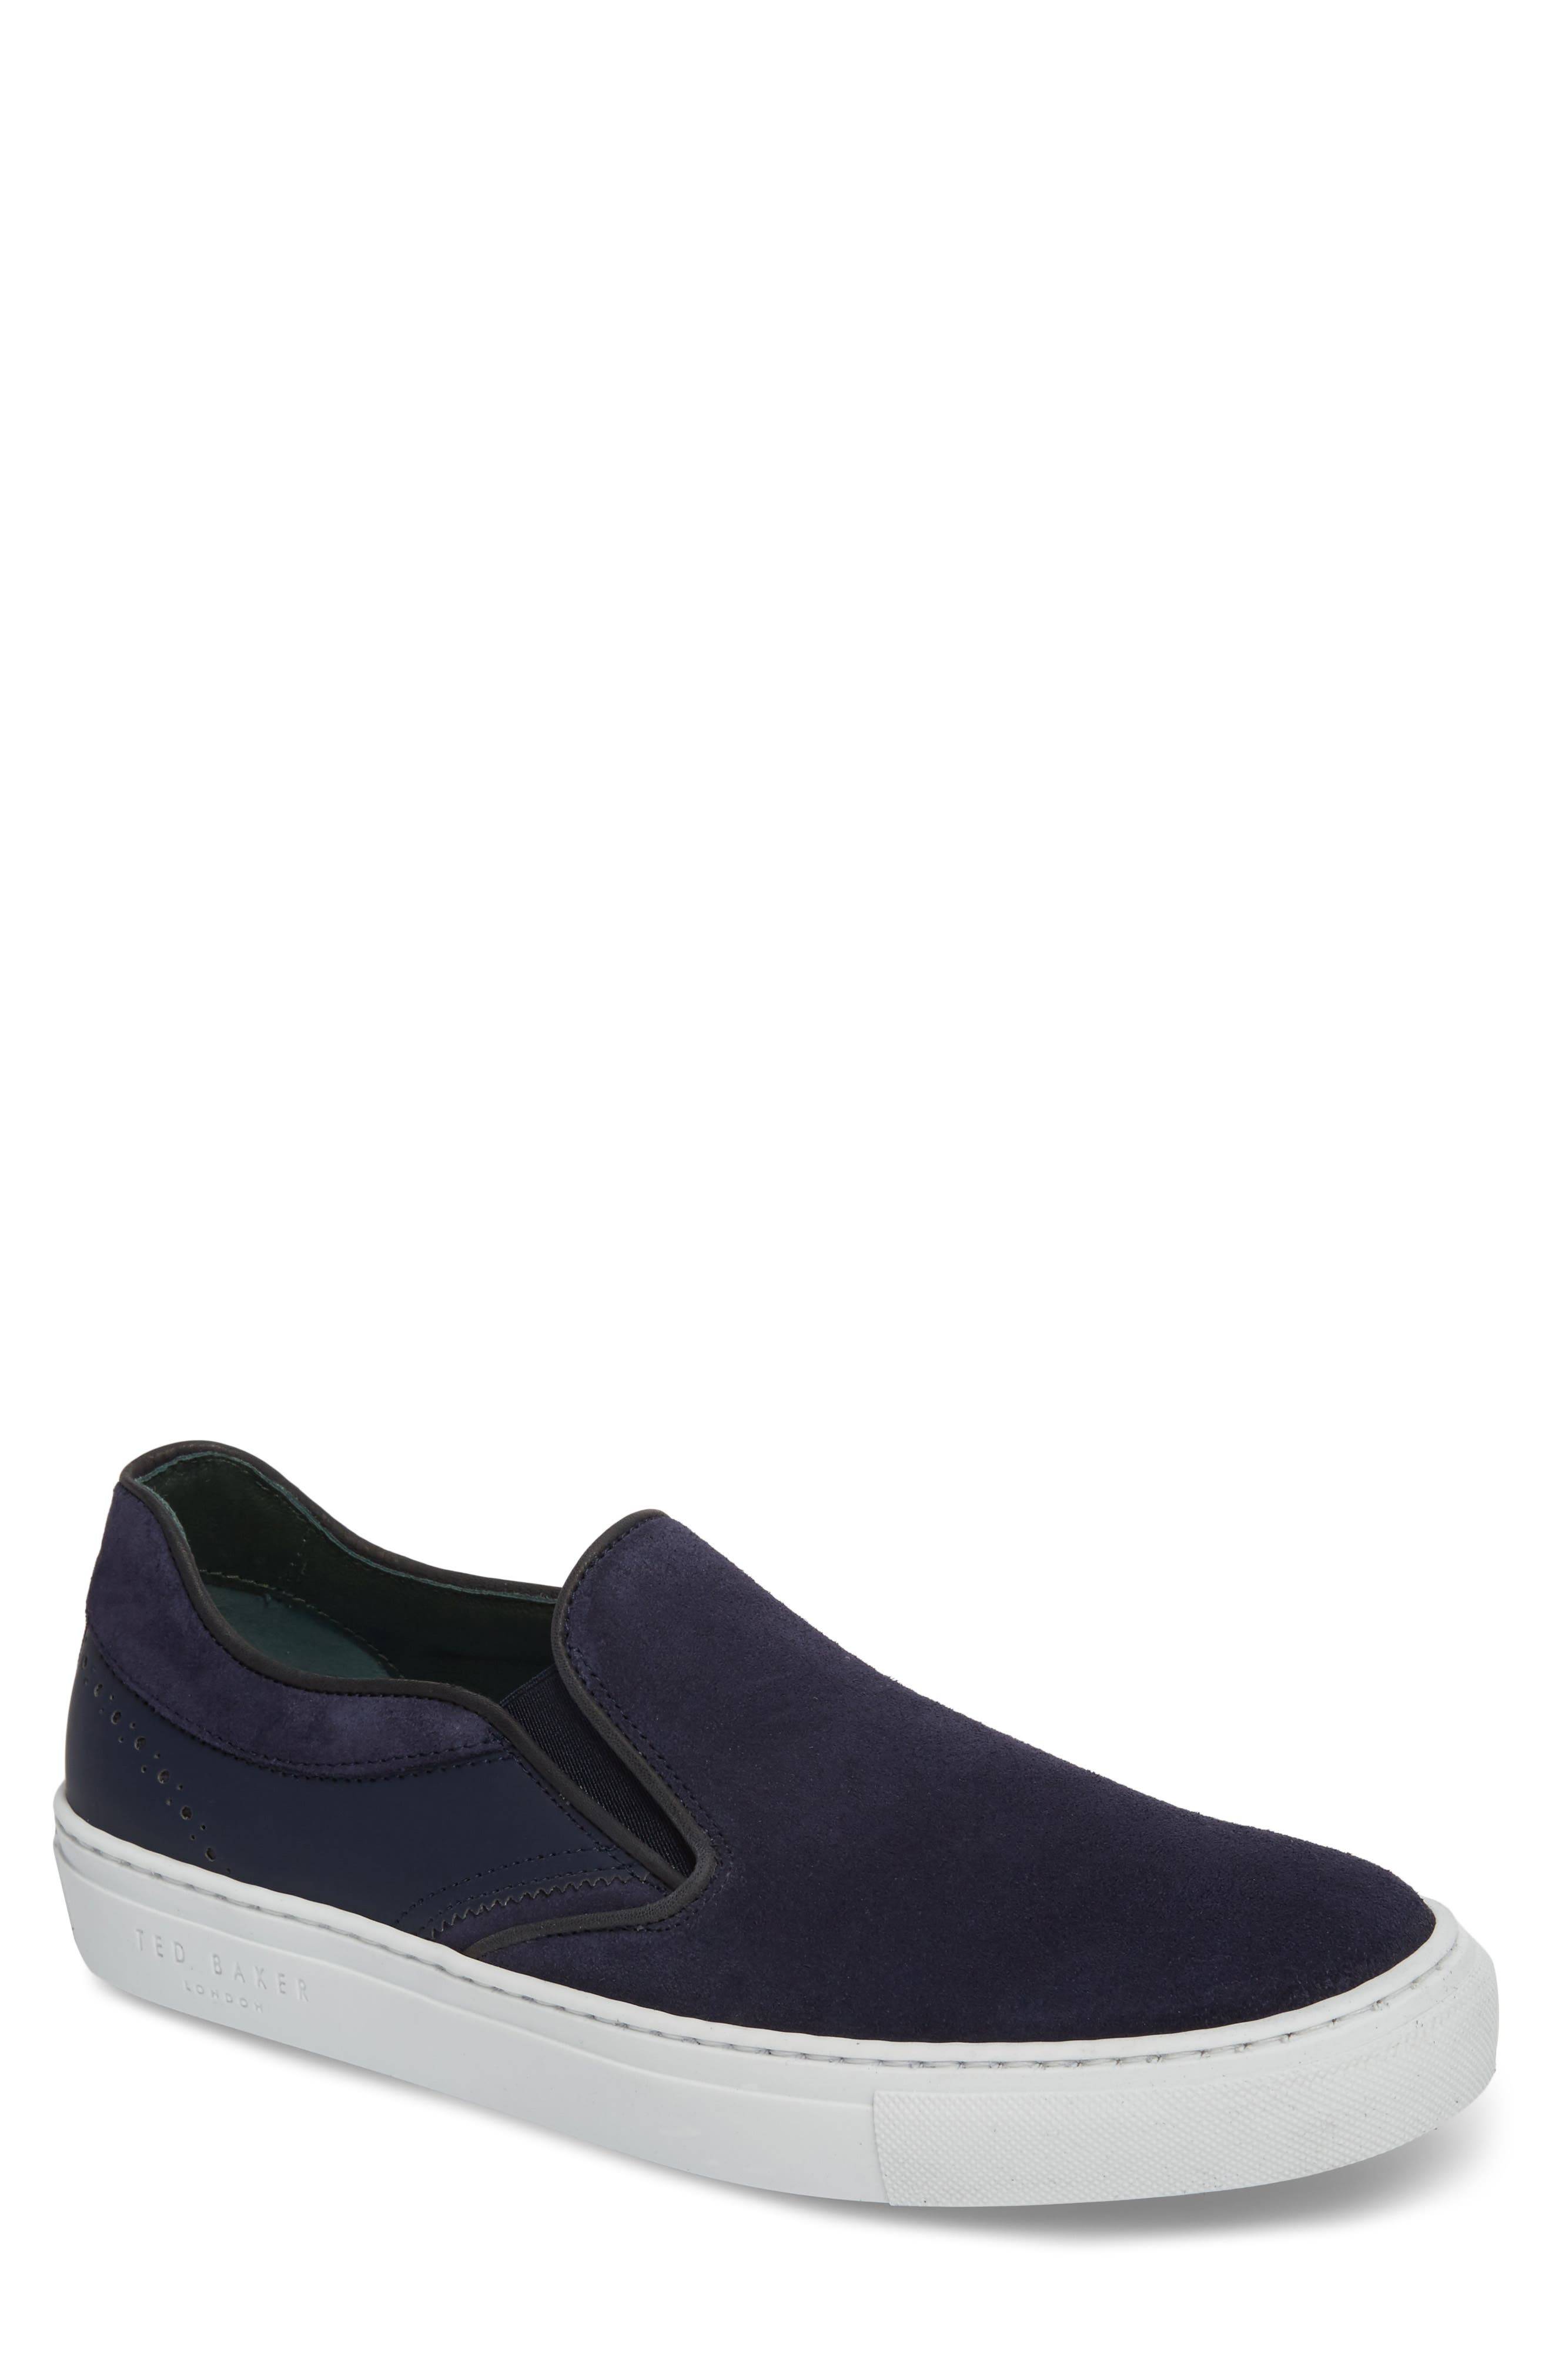 Reaine Brogued Slip-On Sneaker,                             Main thumbnail 1, color,                             Dark Blue Leather